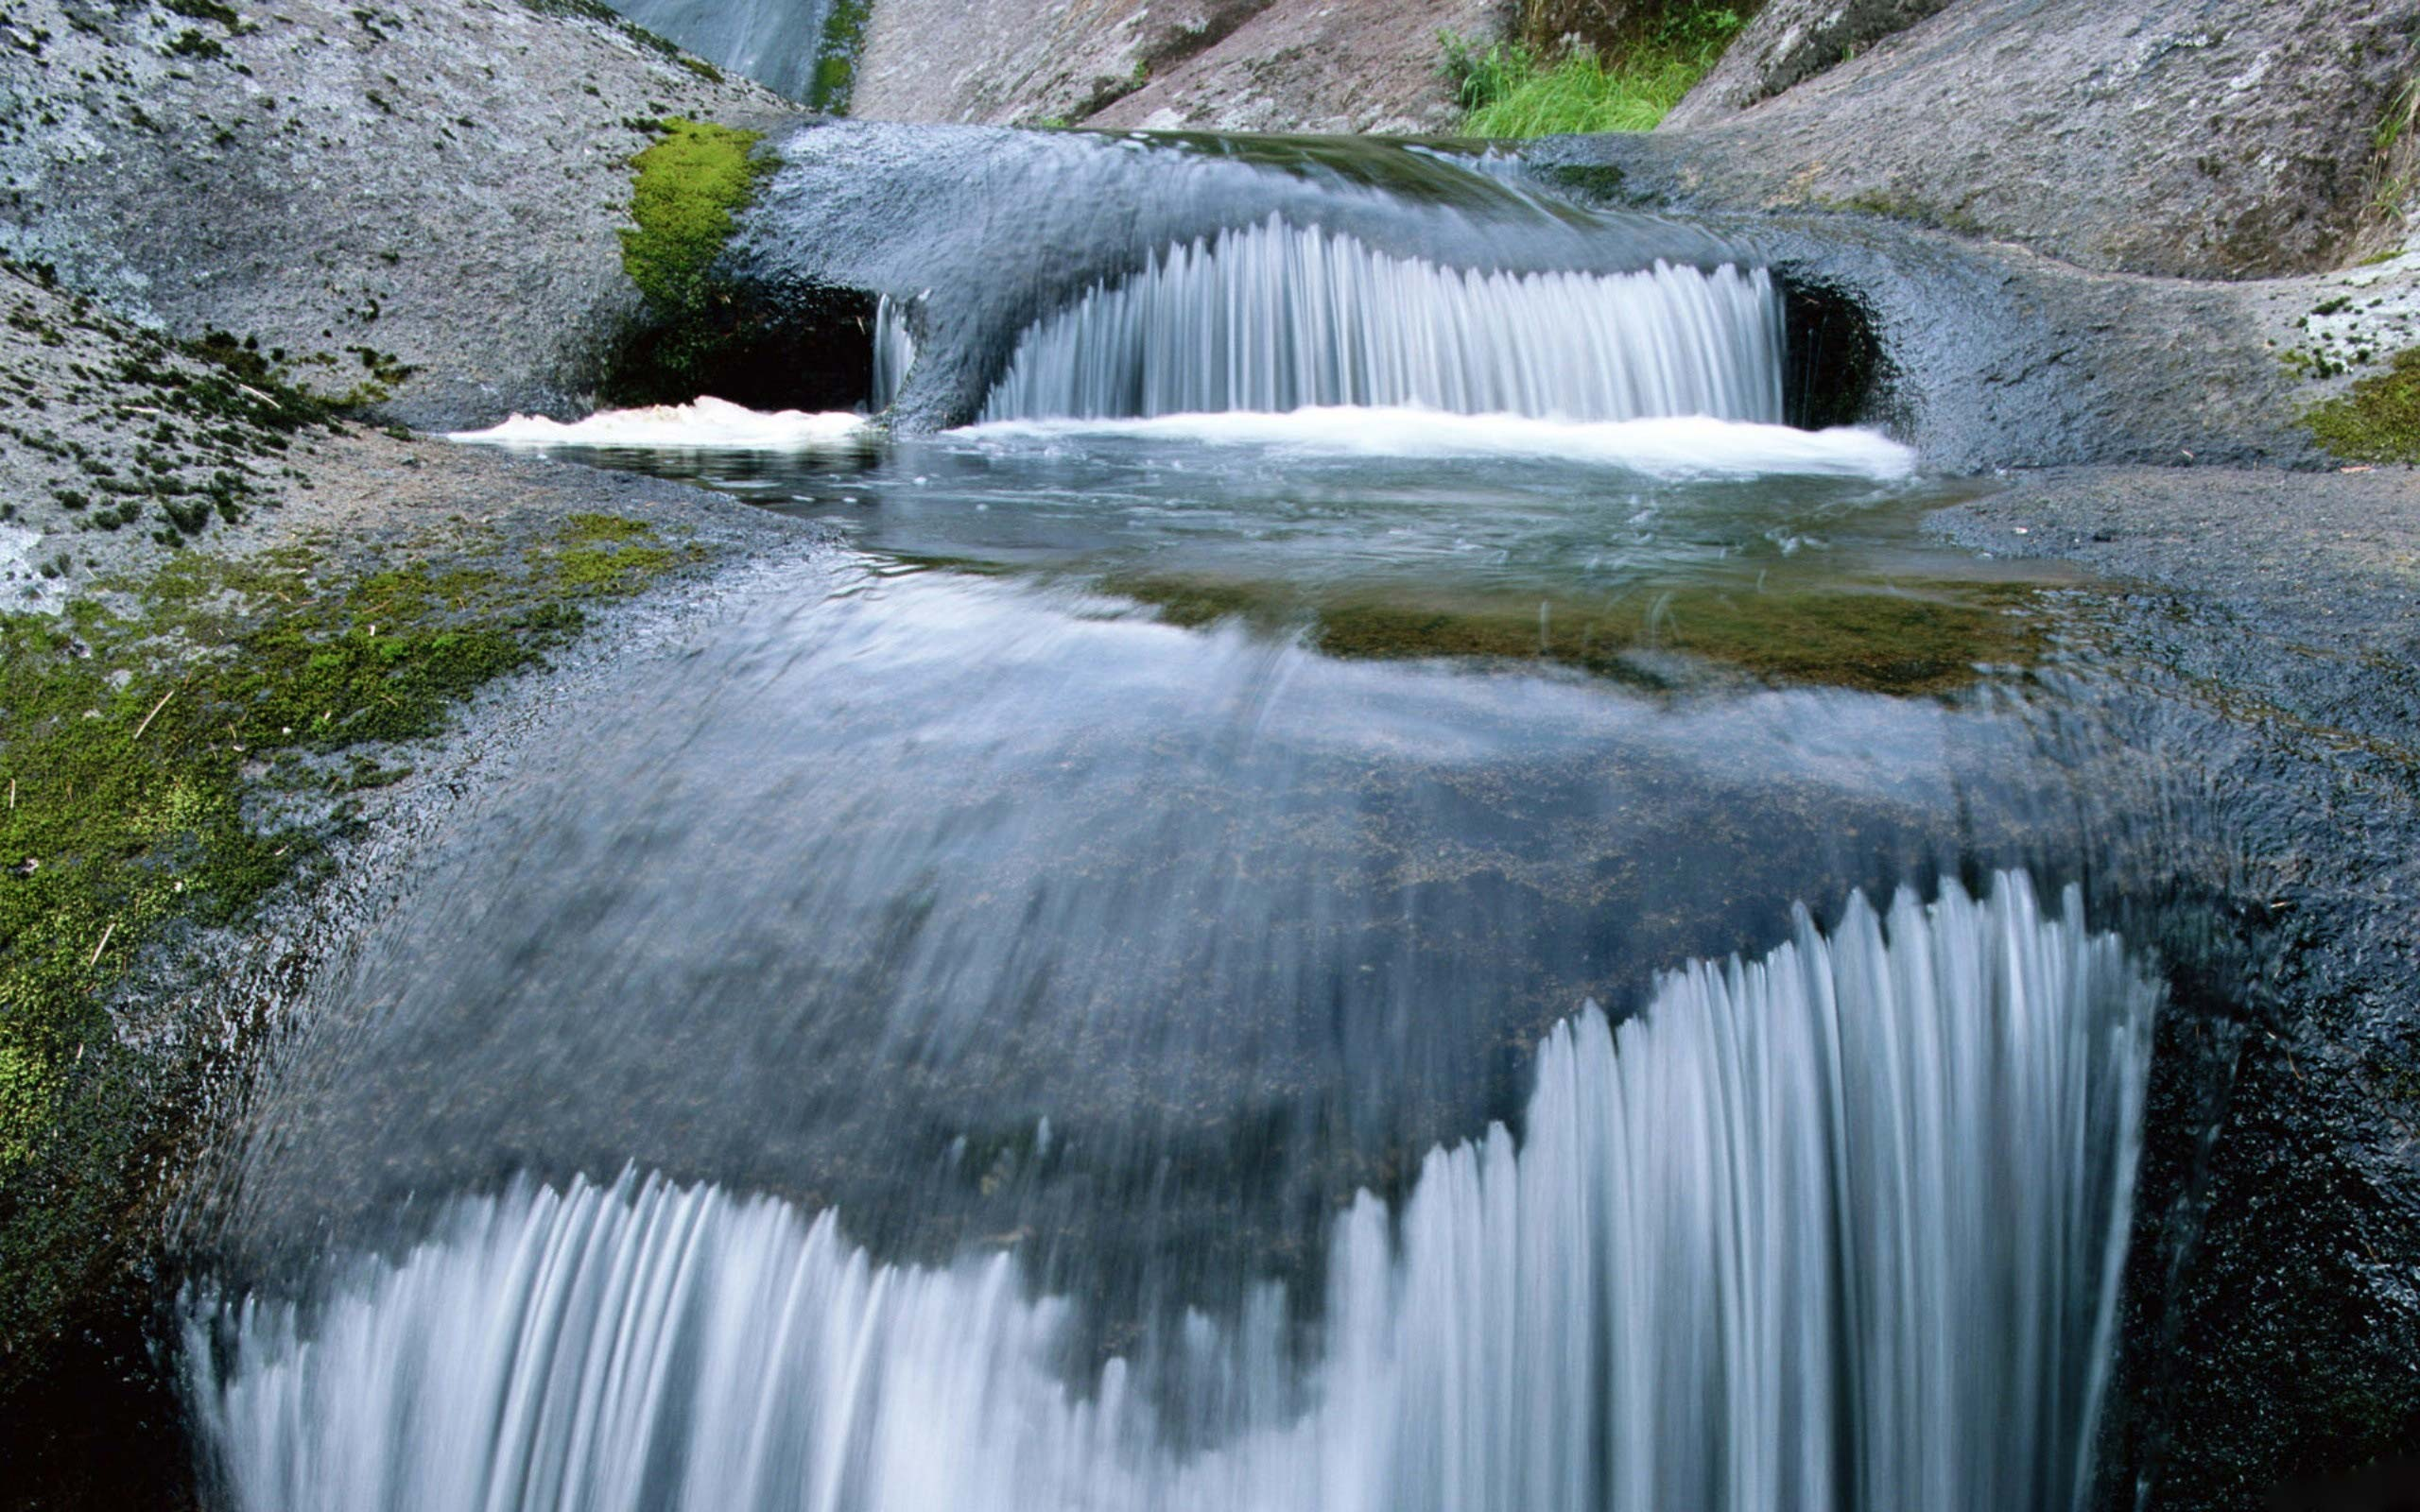 Cool Wallpapers Water Fall High Resolution Wallpapers 2560x1600 Wallpaper Cave